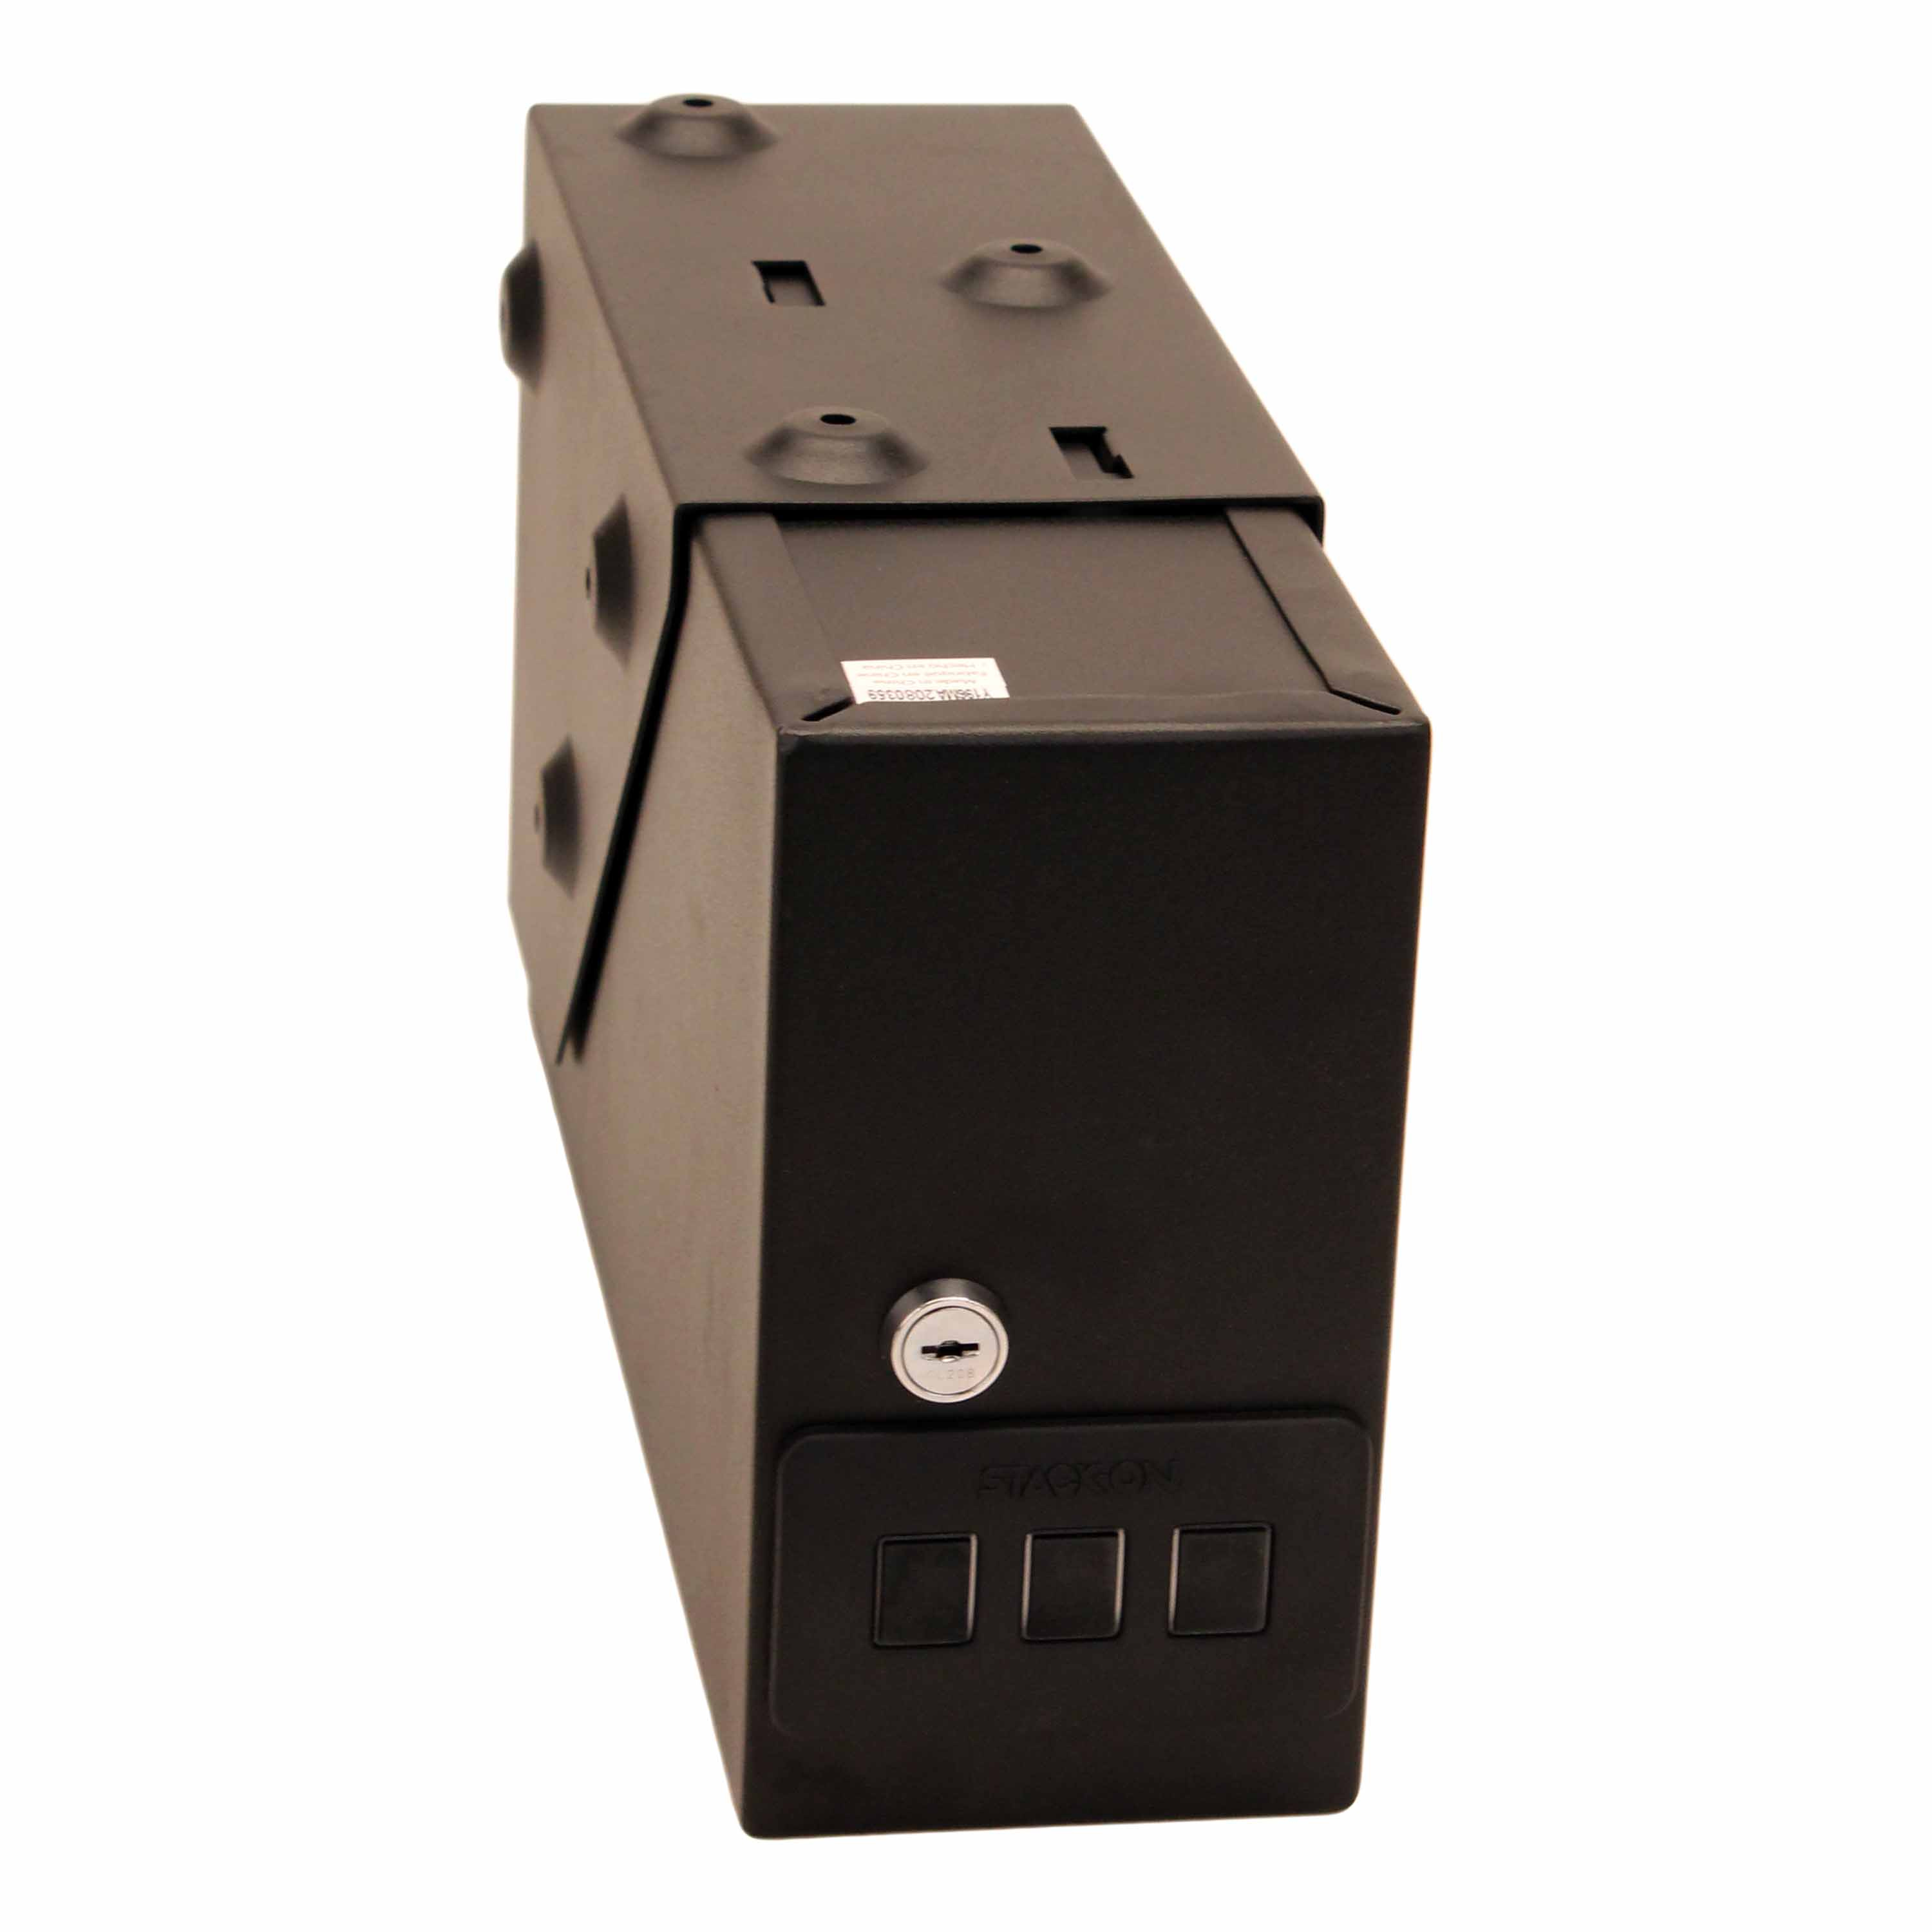 Stack-On QAS-1304 Low Profile Quick Access Safe with Electronic Lock Black